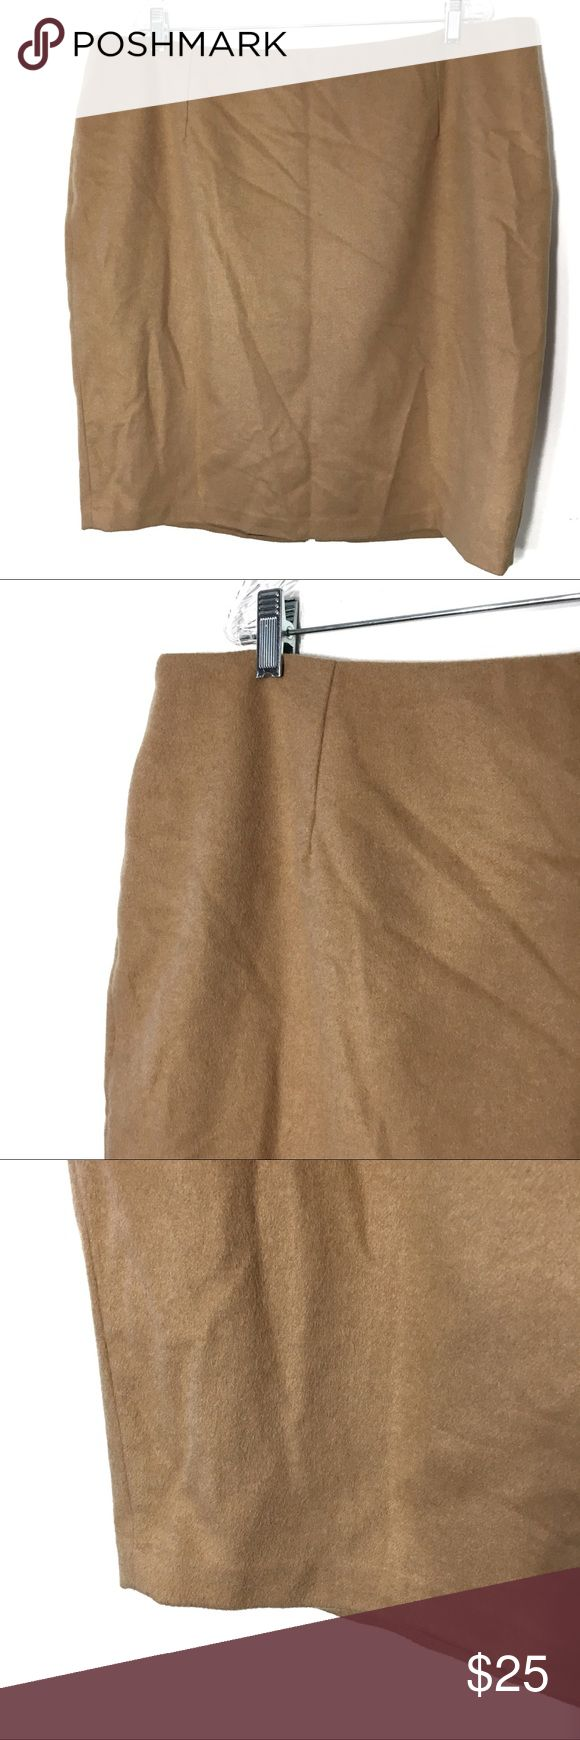 Lord & Taylor Wool Blend Camel Tan Pencil Skirt Plus size wool blend pencil skirt from Lord & Taylor, beautiful and classy camel/tan coloring. So soft, and lined. You'll have the classiest skirt in your office by far. Lord & Taylor Skirts Pencil